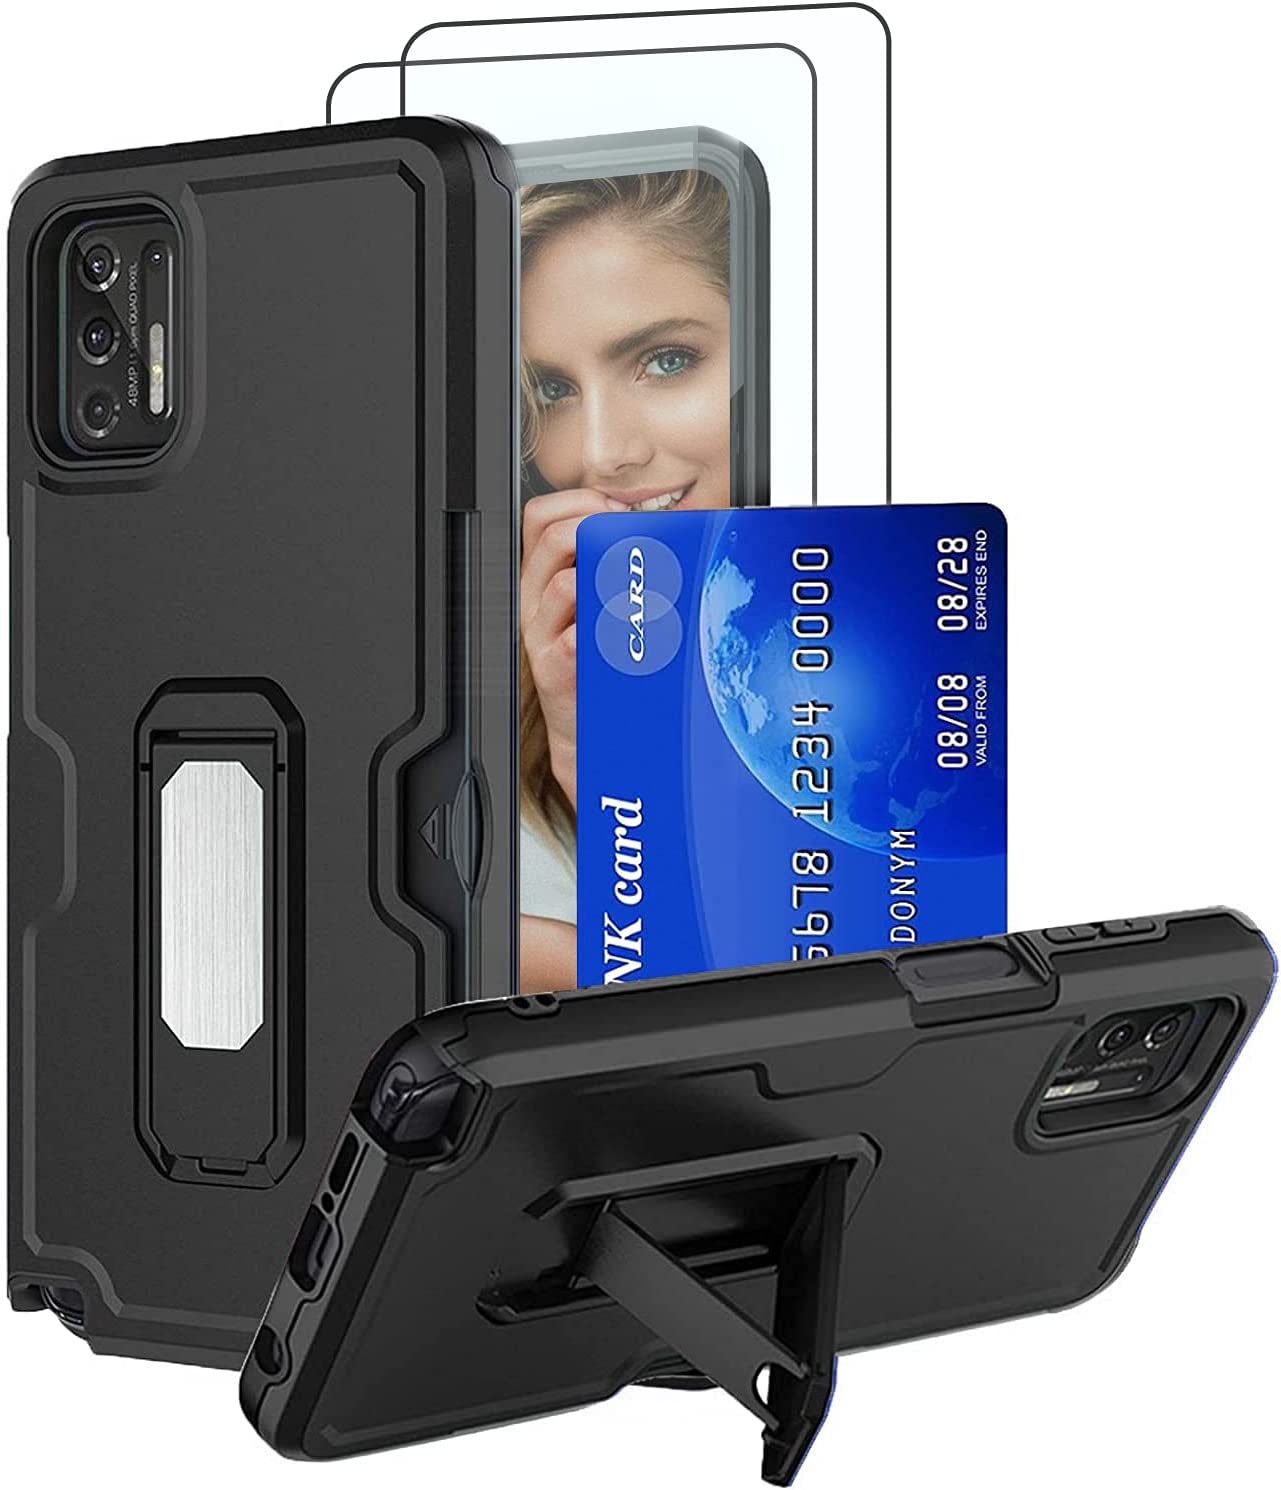 REAMOUNT Case for Samsung Galaxy A52 4G & 5G 2021 with Tempered Glass Screen Protector [2 Pack], Dual Layer Shockproof Built in Kickstand Case with Card Slot Holder for Galaxy A52 (Black)